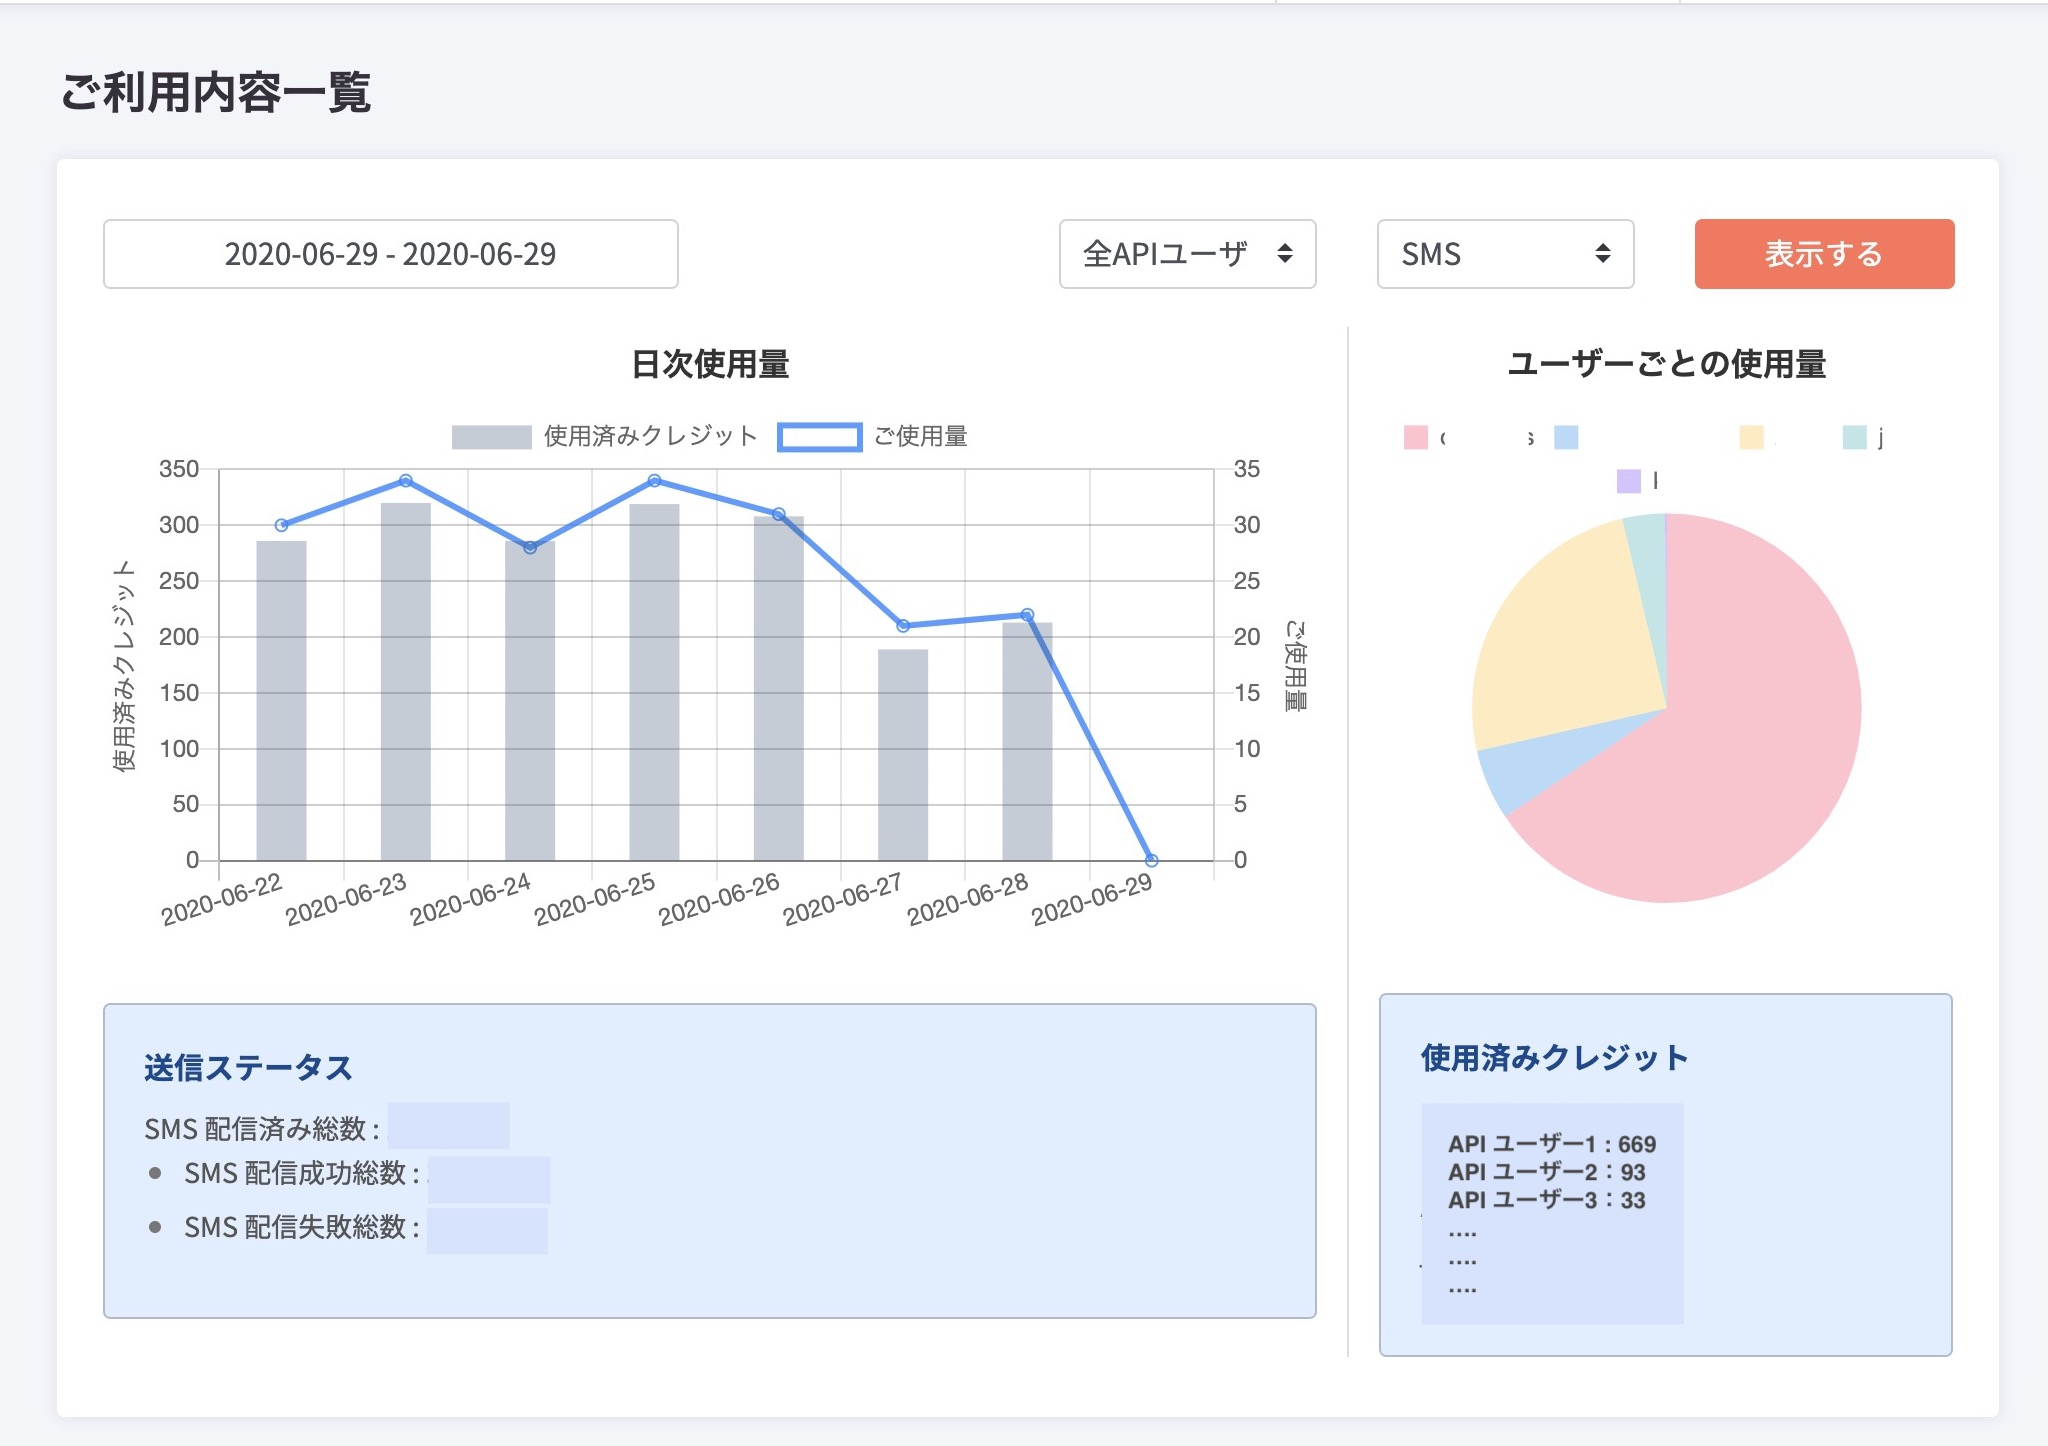 dashboard image